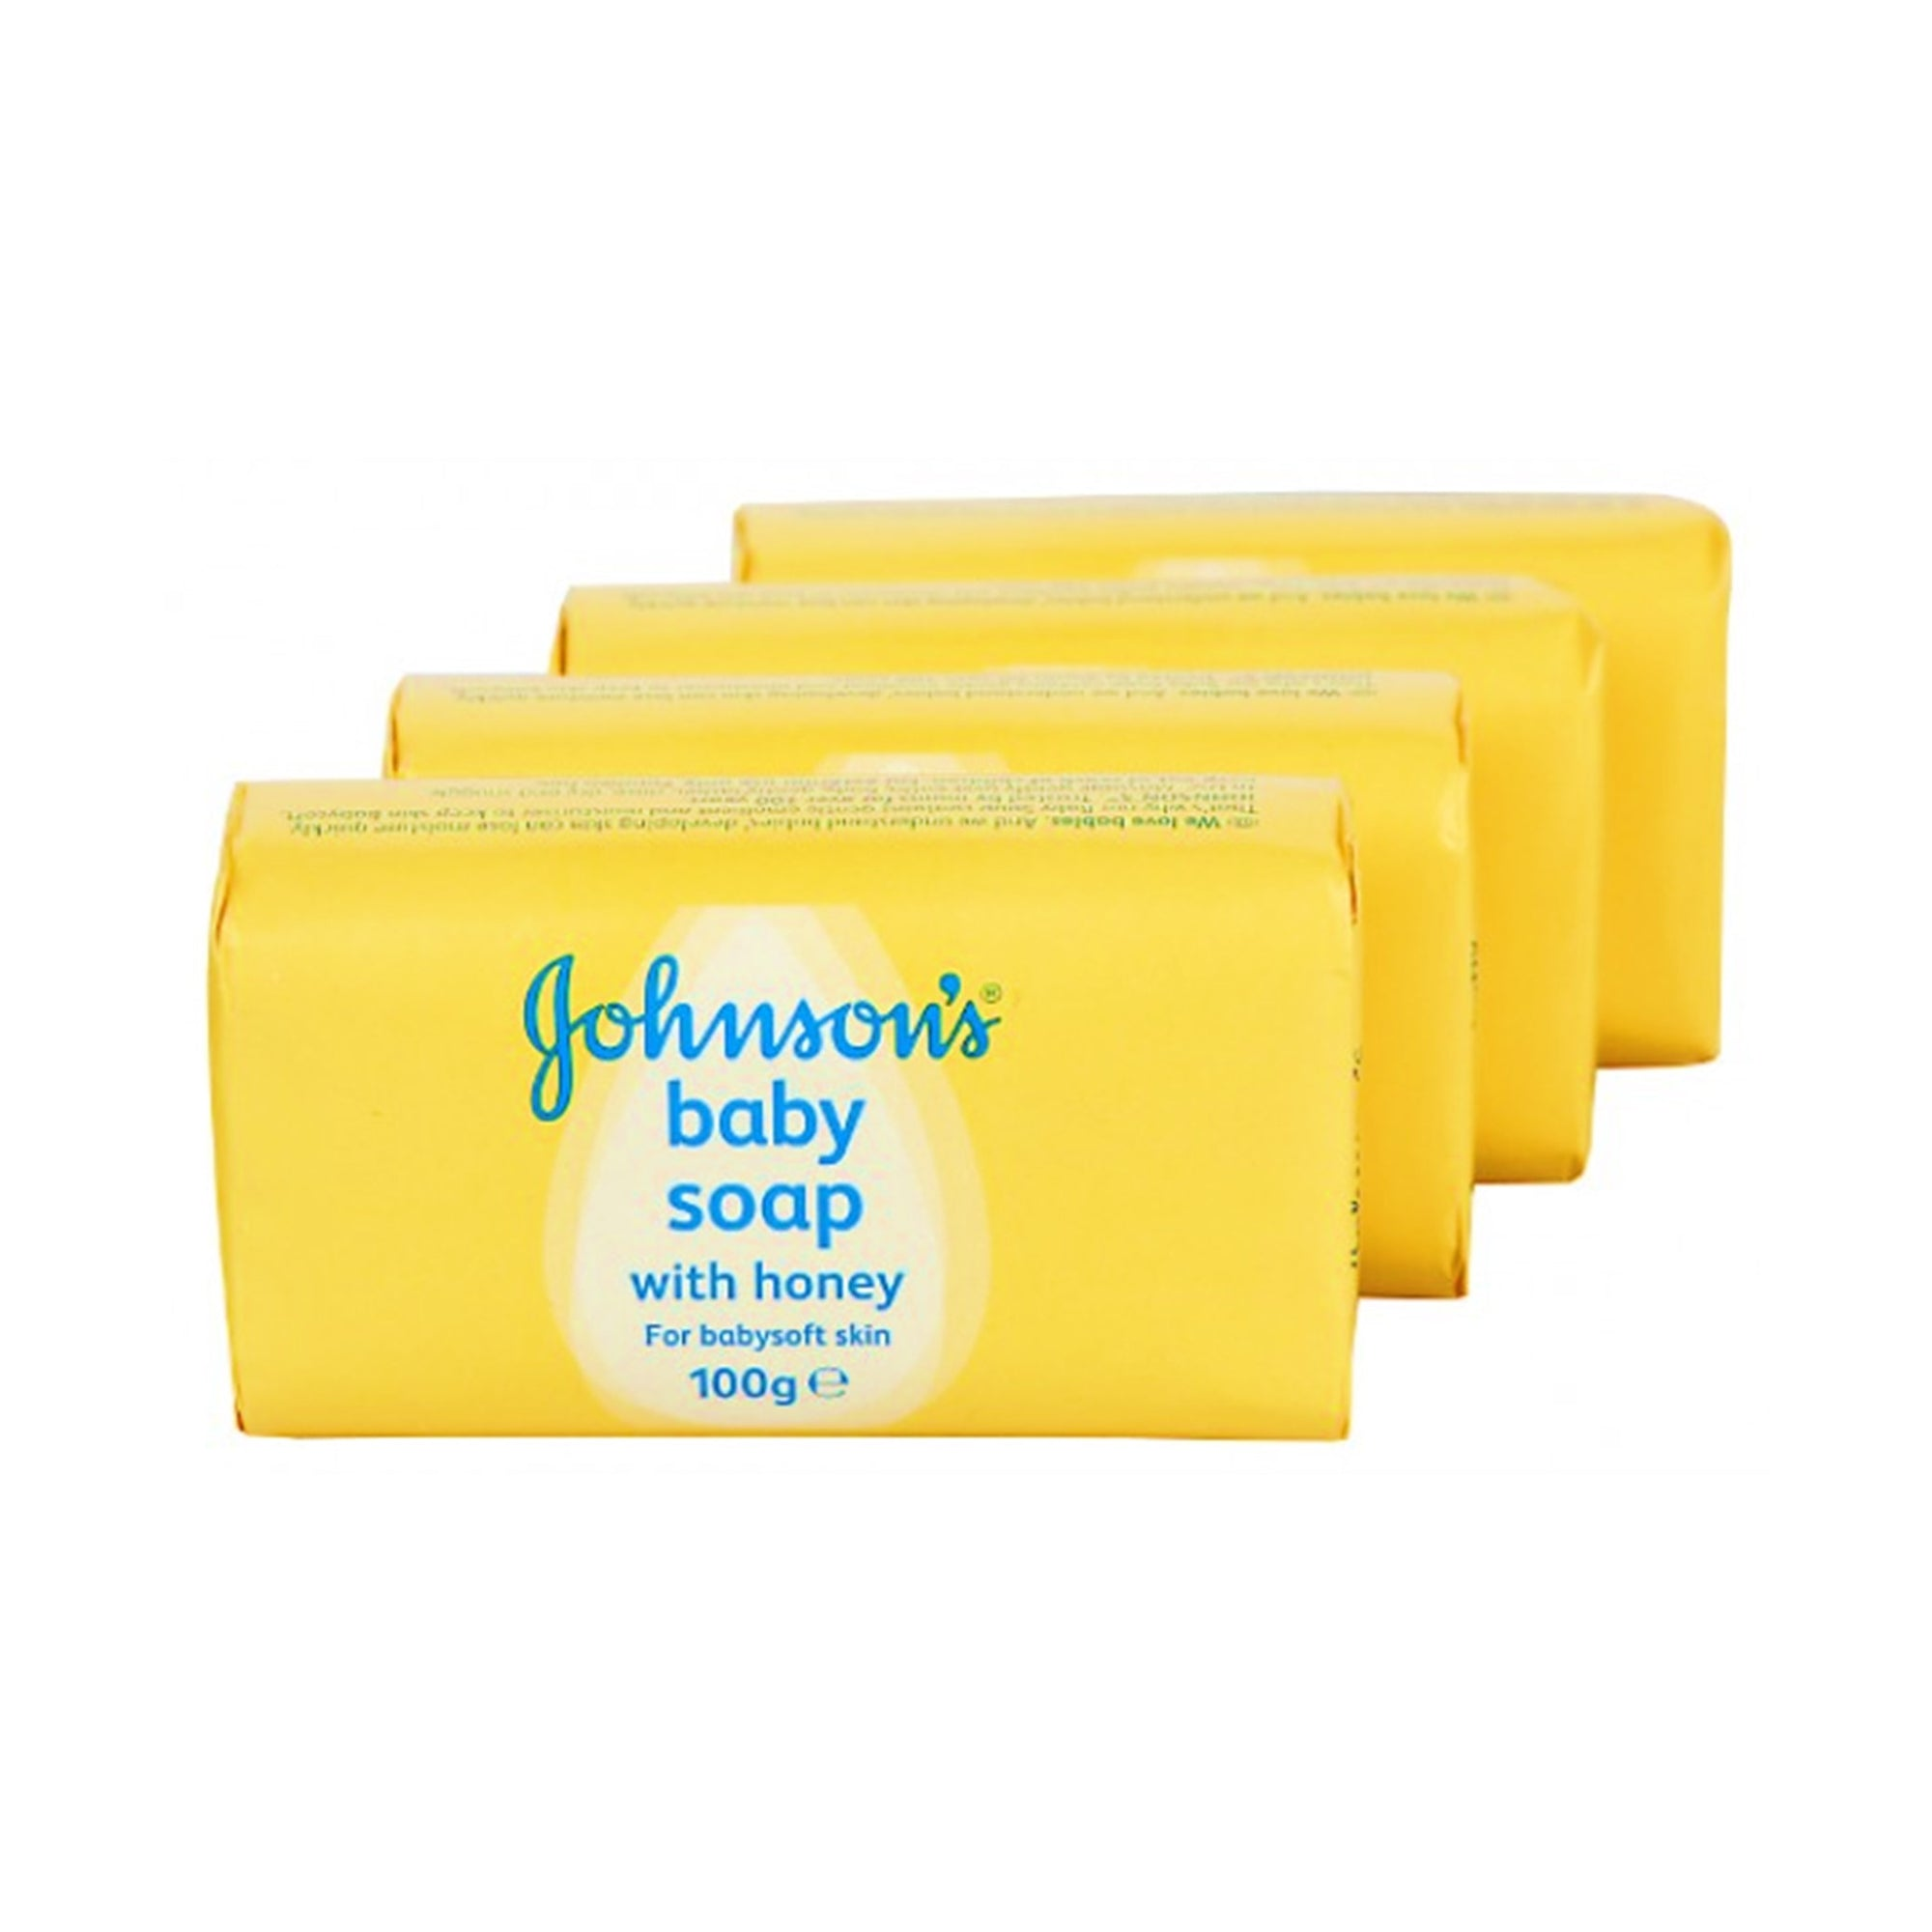 Johnsons Baby Soap Honey 4X 100G